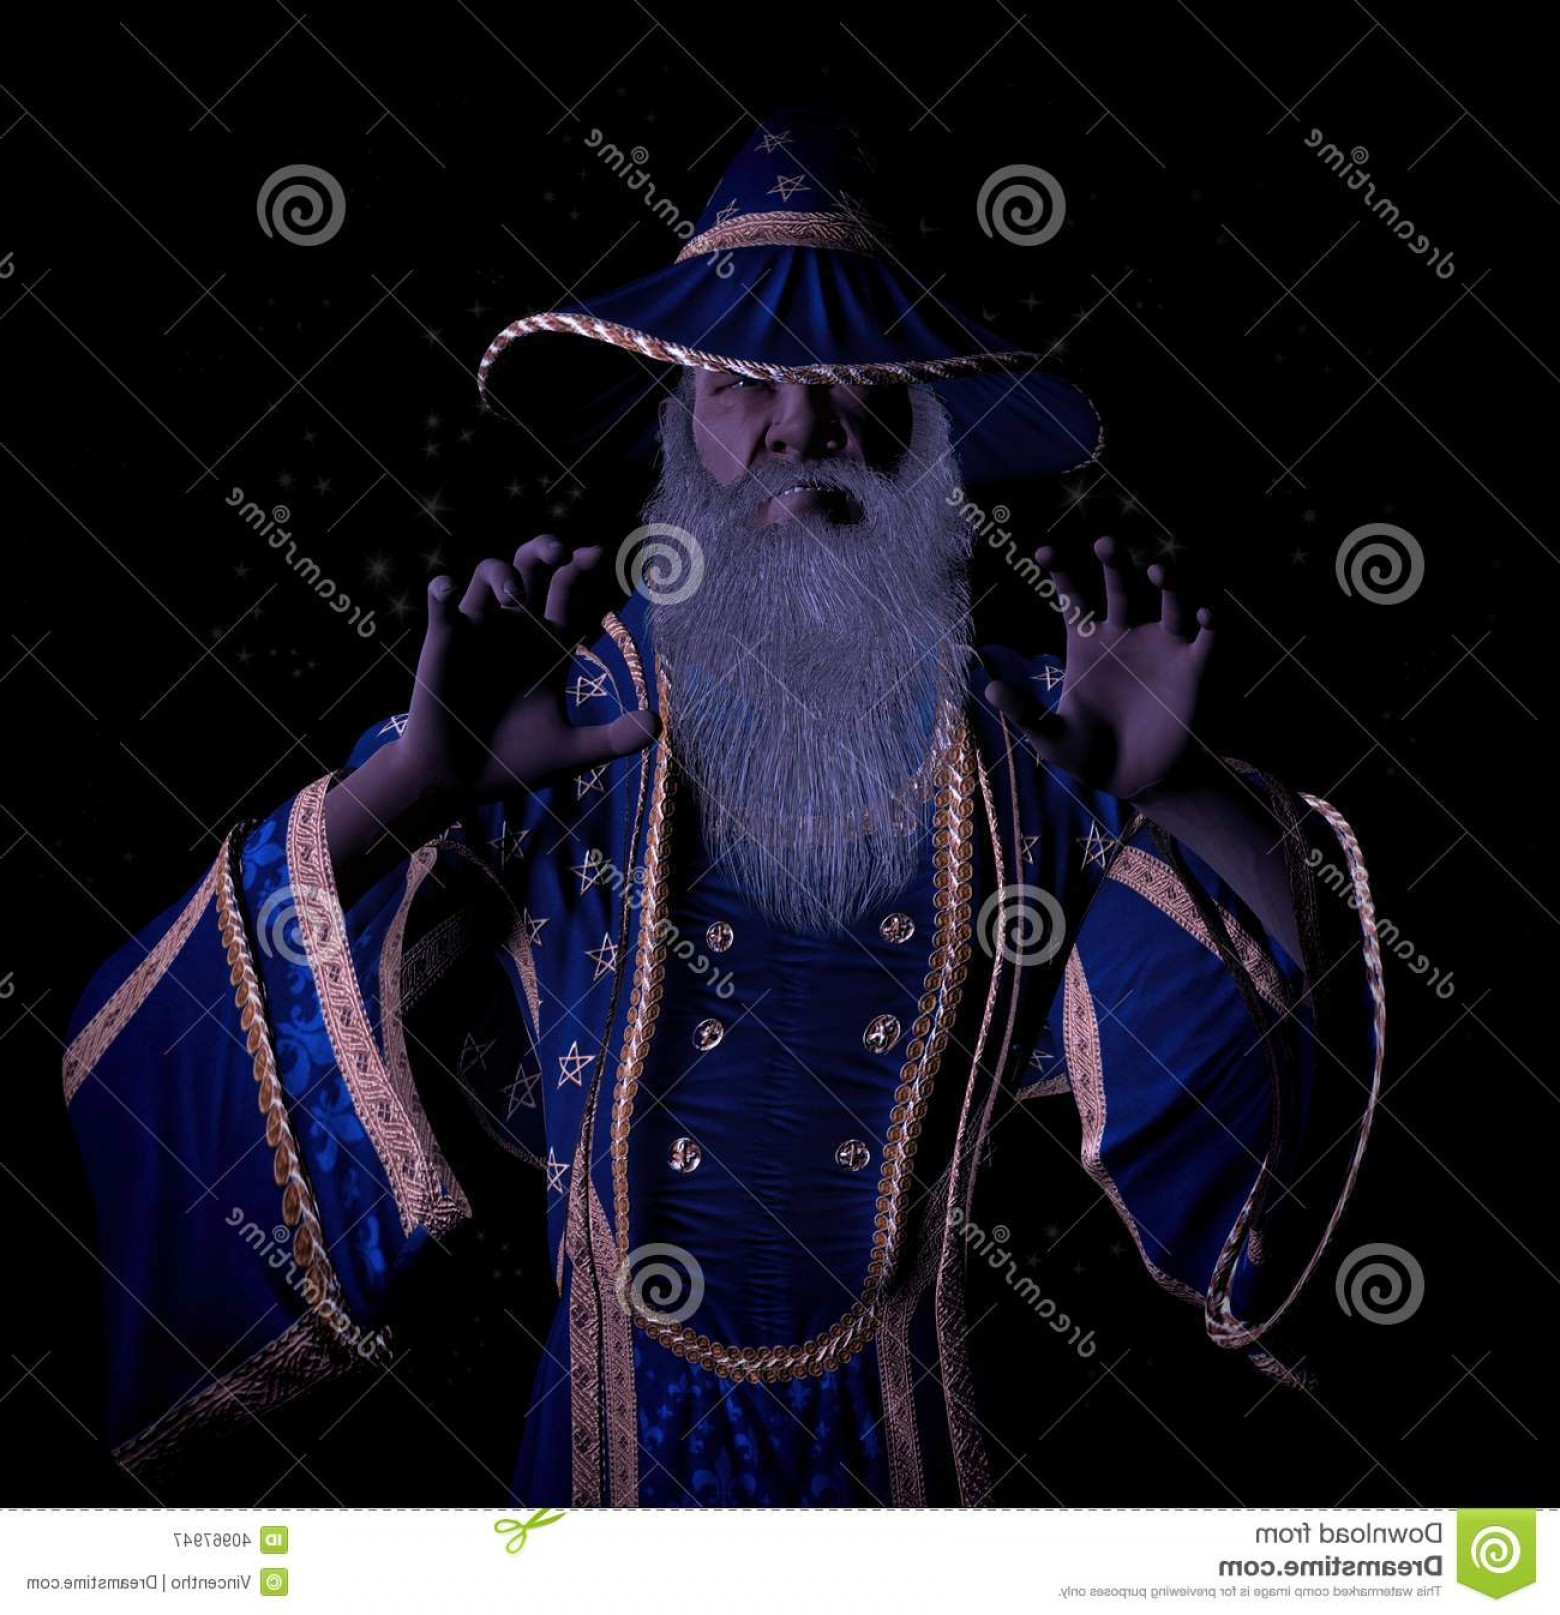 Universal Studios Wizard Hat Vector: Stock Illustration Crazy Grumpy Old Wizard Casting Magic Spell His Both Hands Grasping Towards Subject Front Image